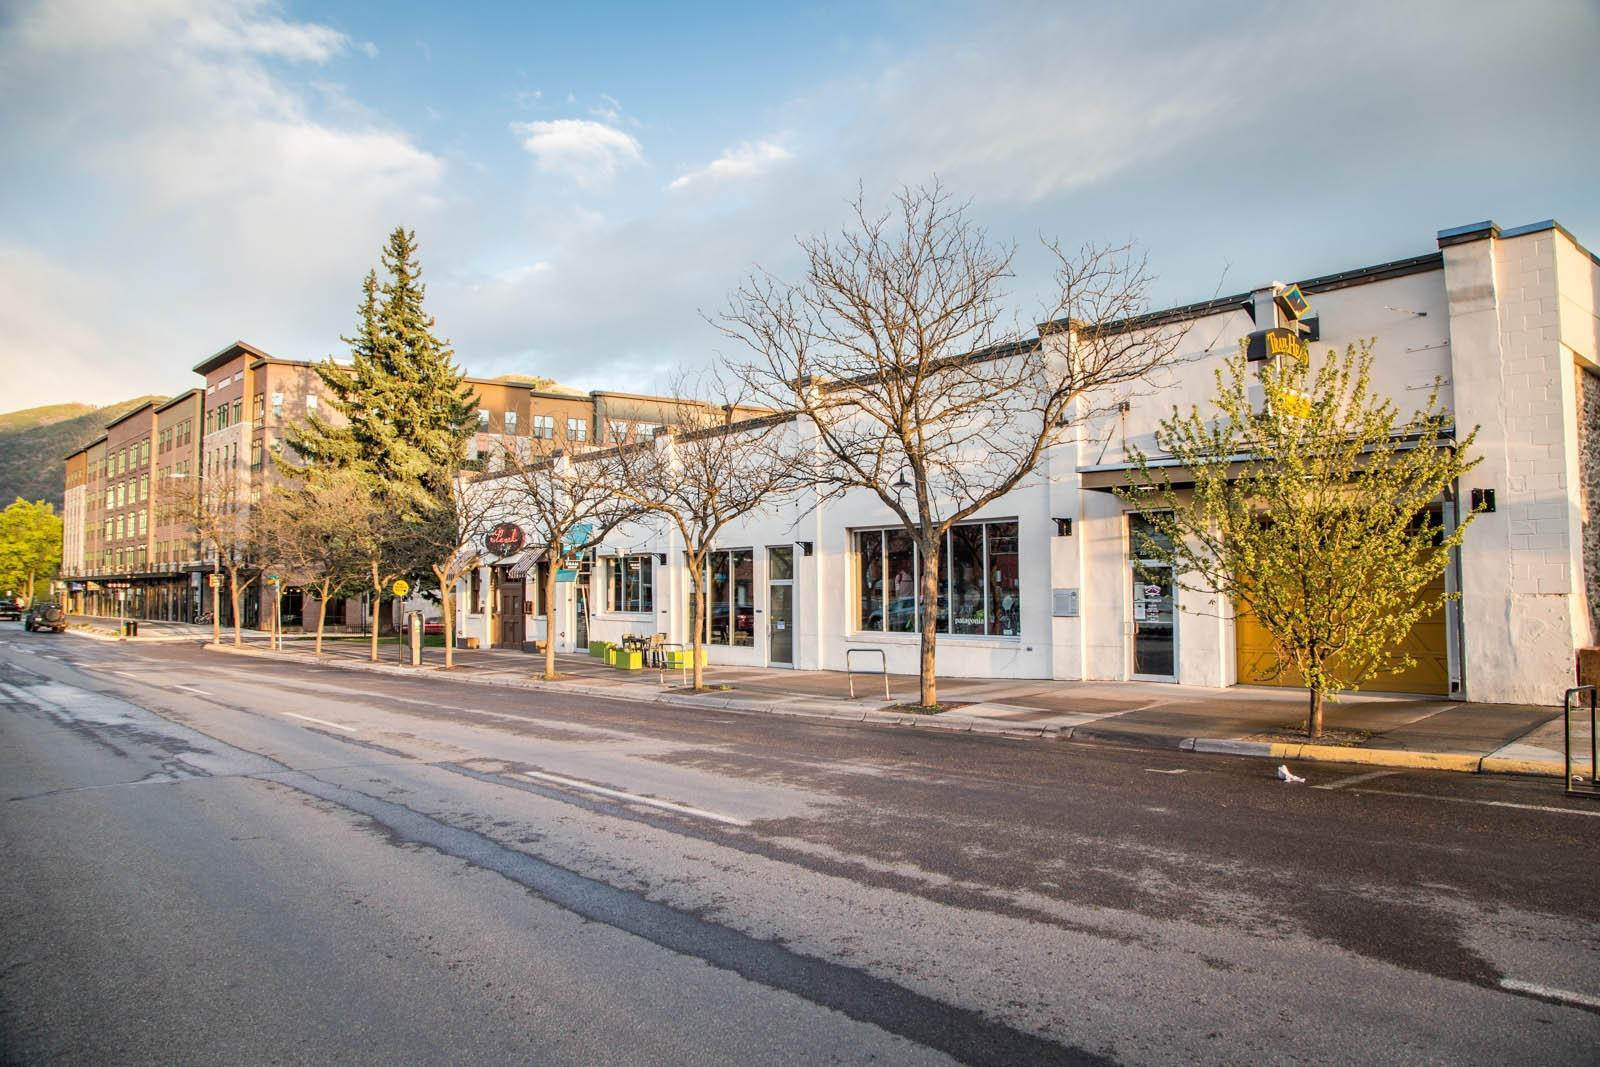 Commercial for Sale at 221&229 East Front Street Missoula, Montana 59802 United States